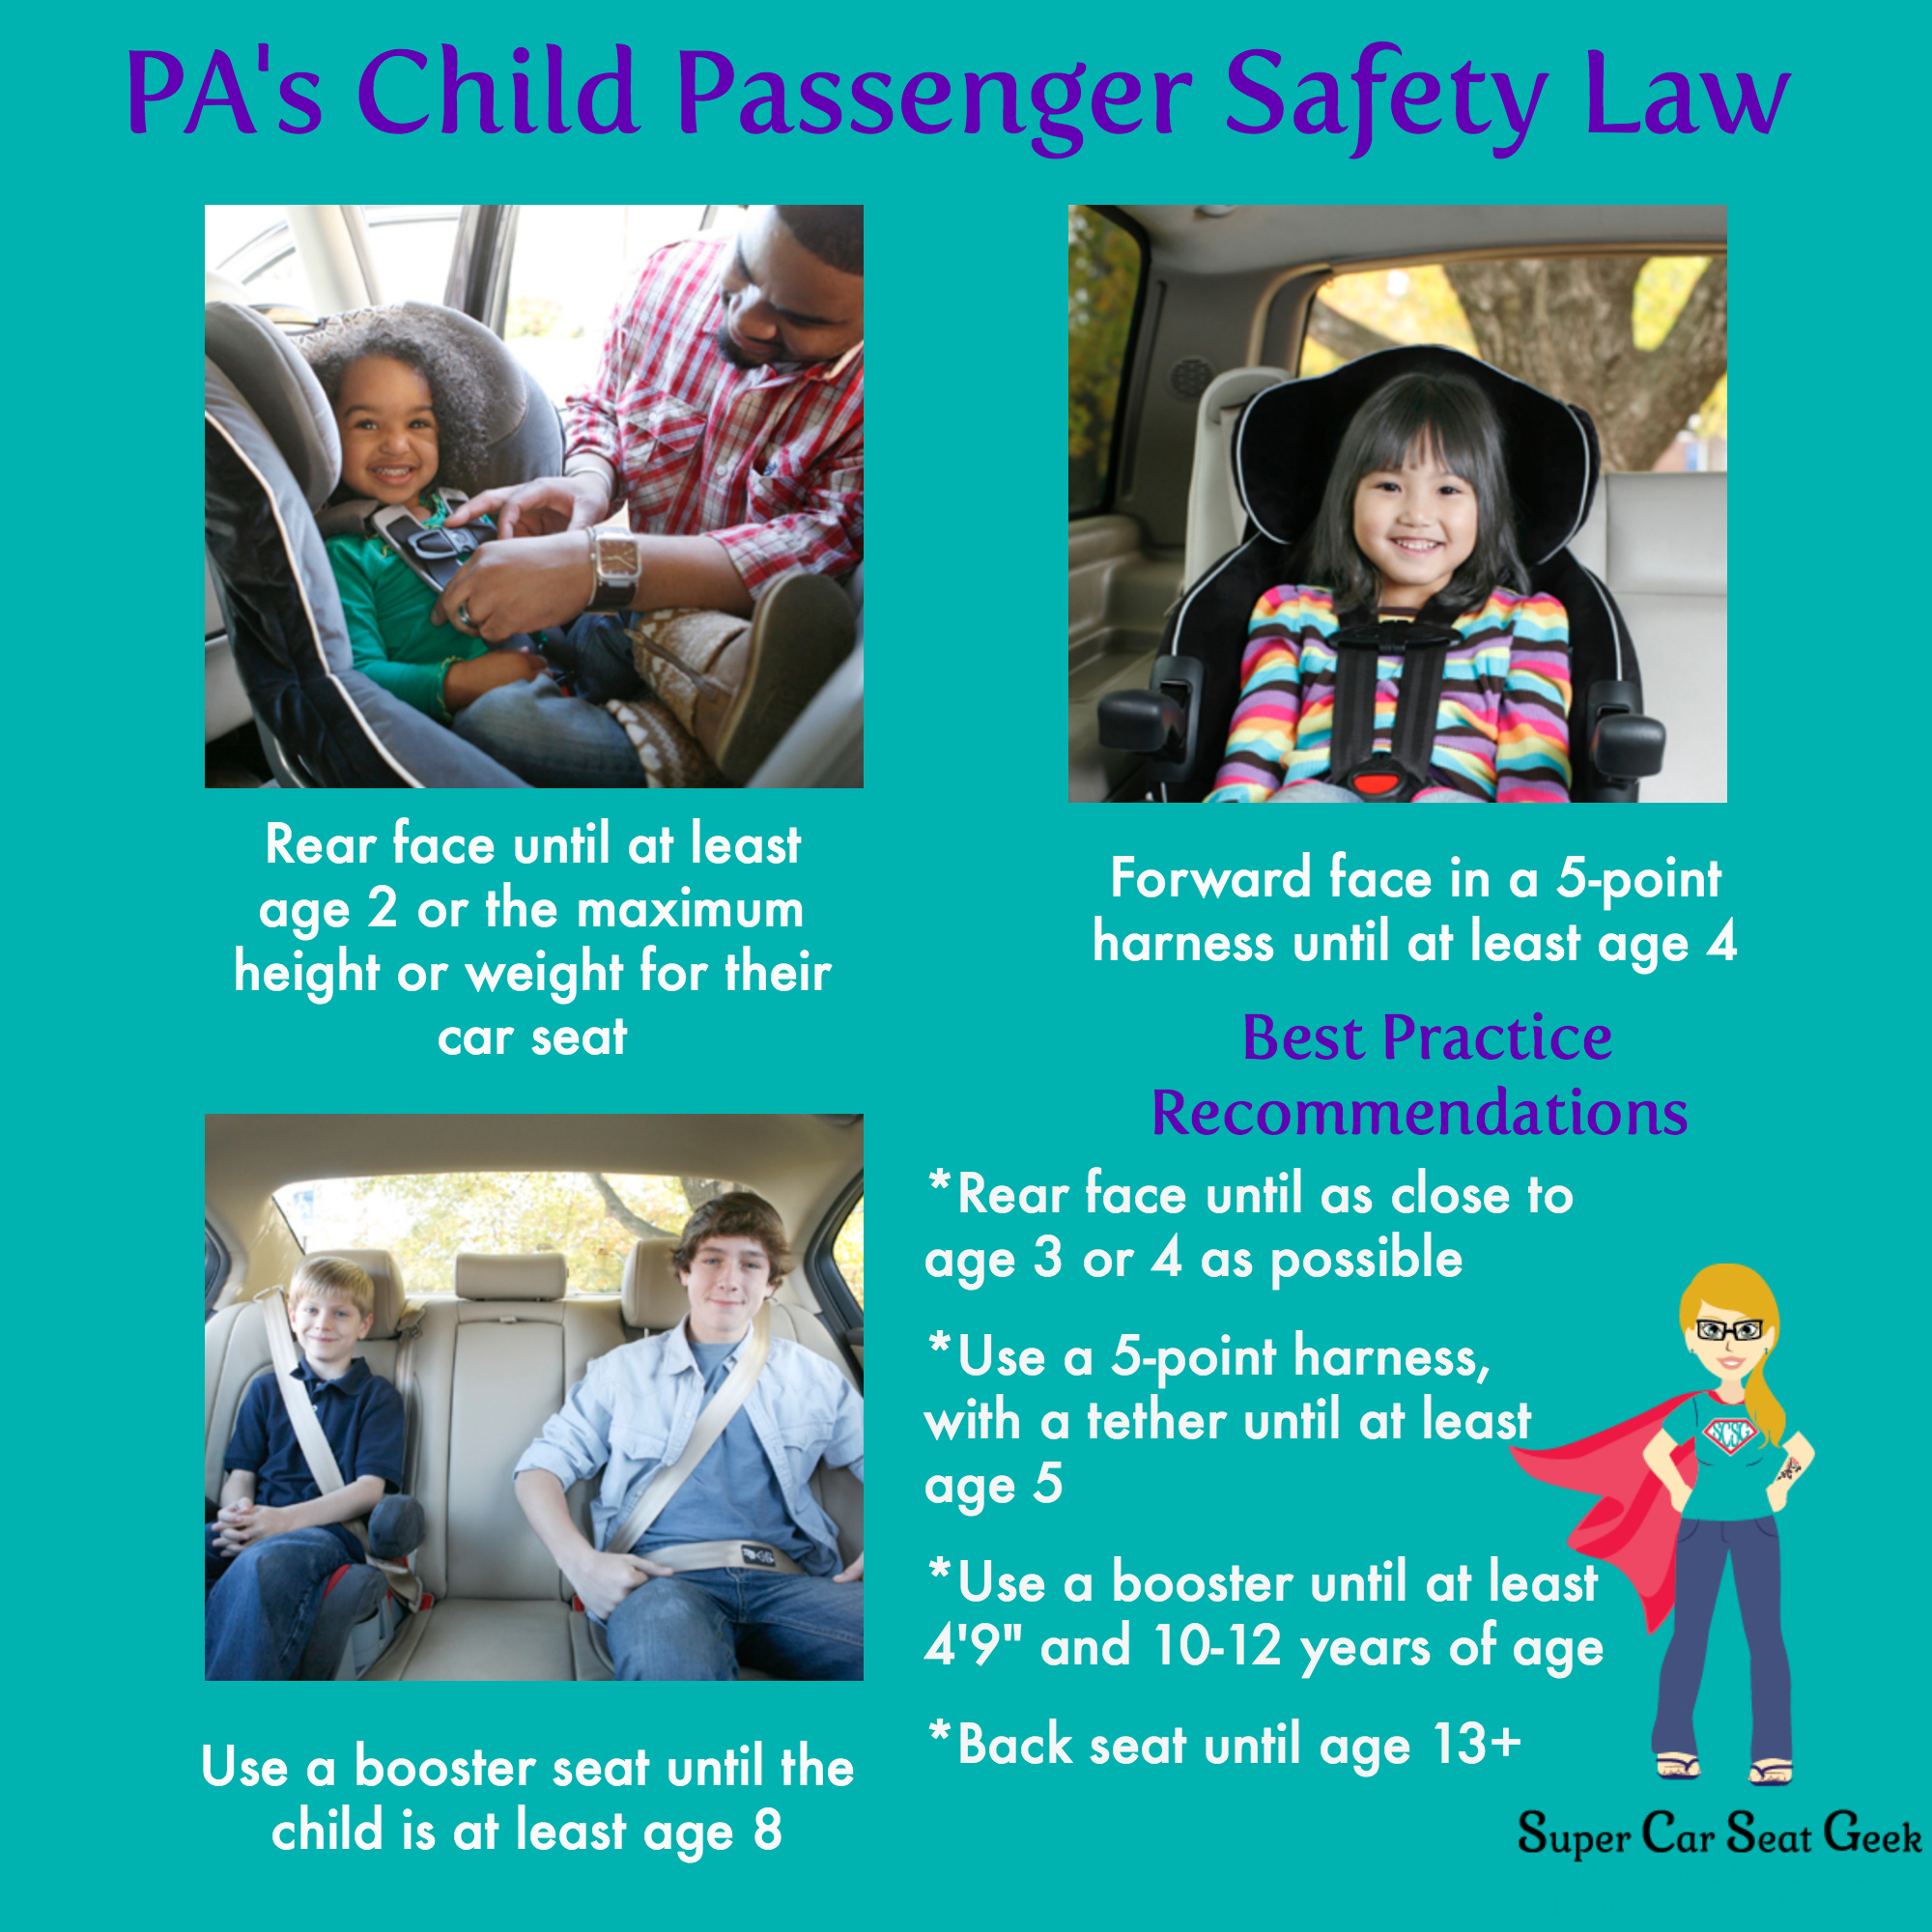 In 2016 PA Joined A Growing Number Of States By Passing Law Requiring Children To Remain Rear Facing Until At Least Age 2 While I Was Rather Disappointed